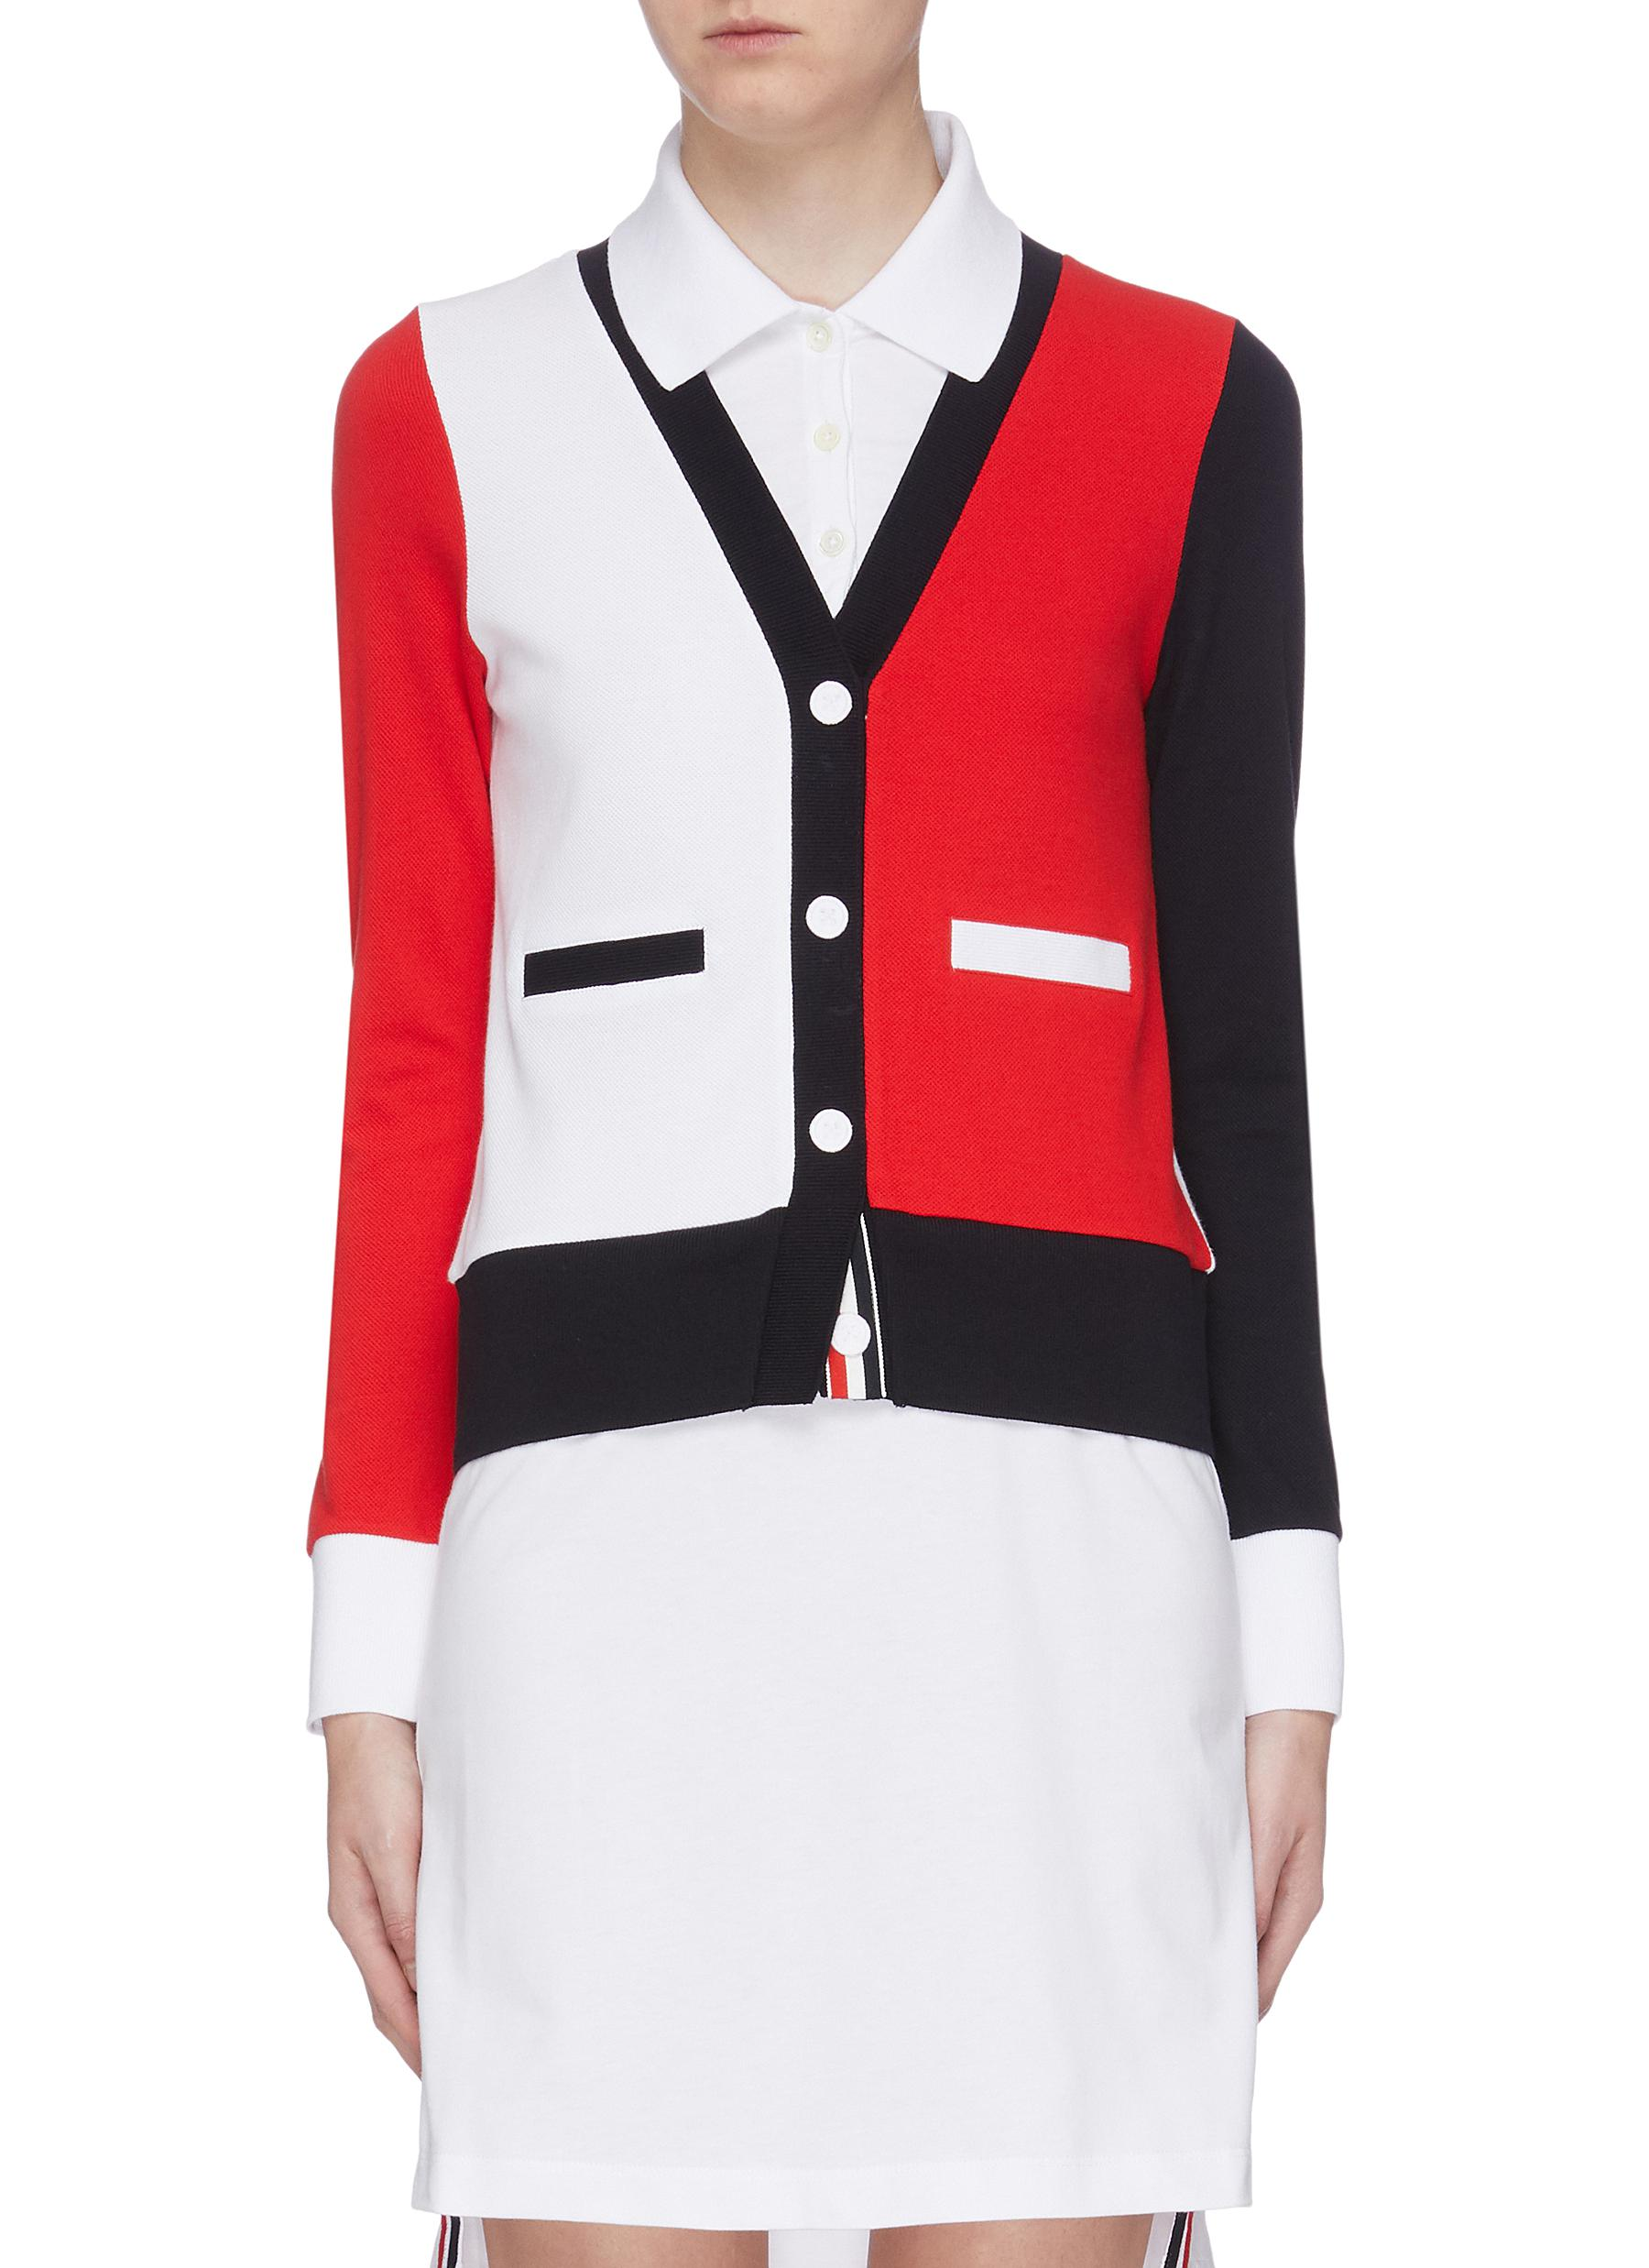 Trompe dail colourblock button polo dress by Thom Browne